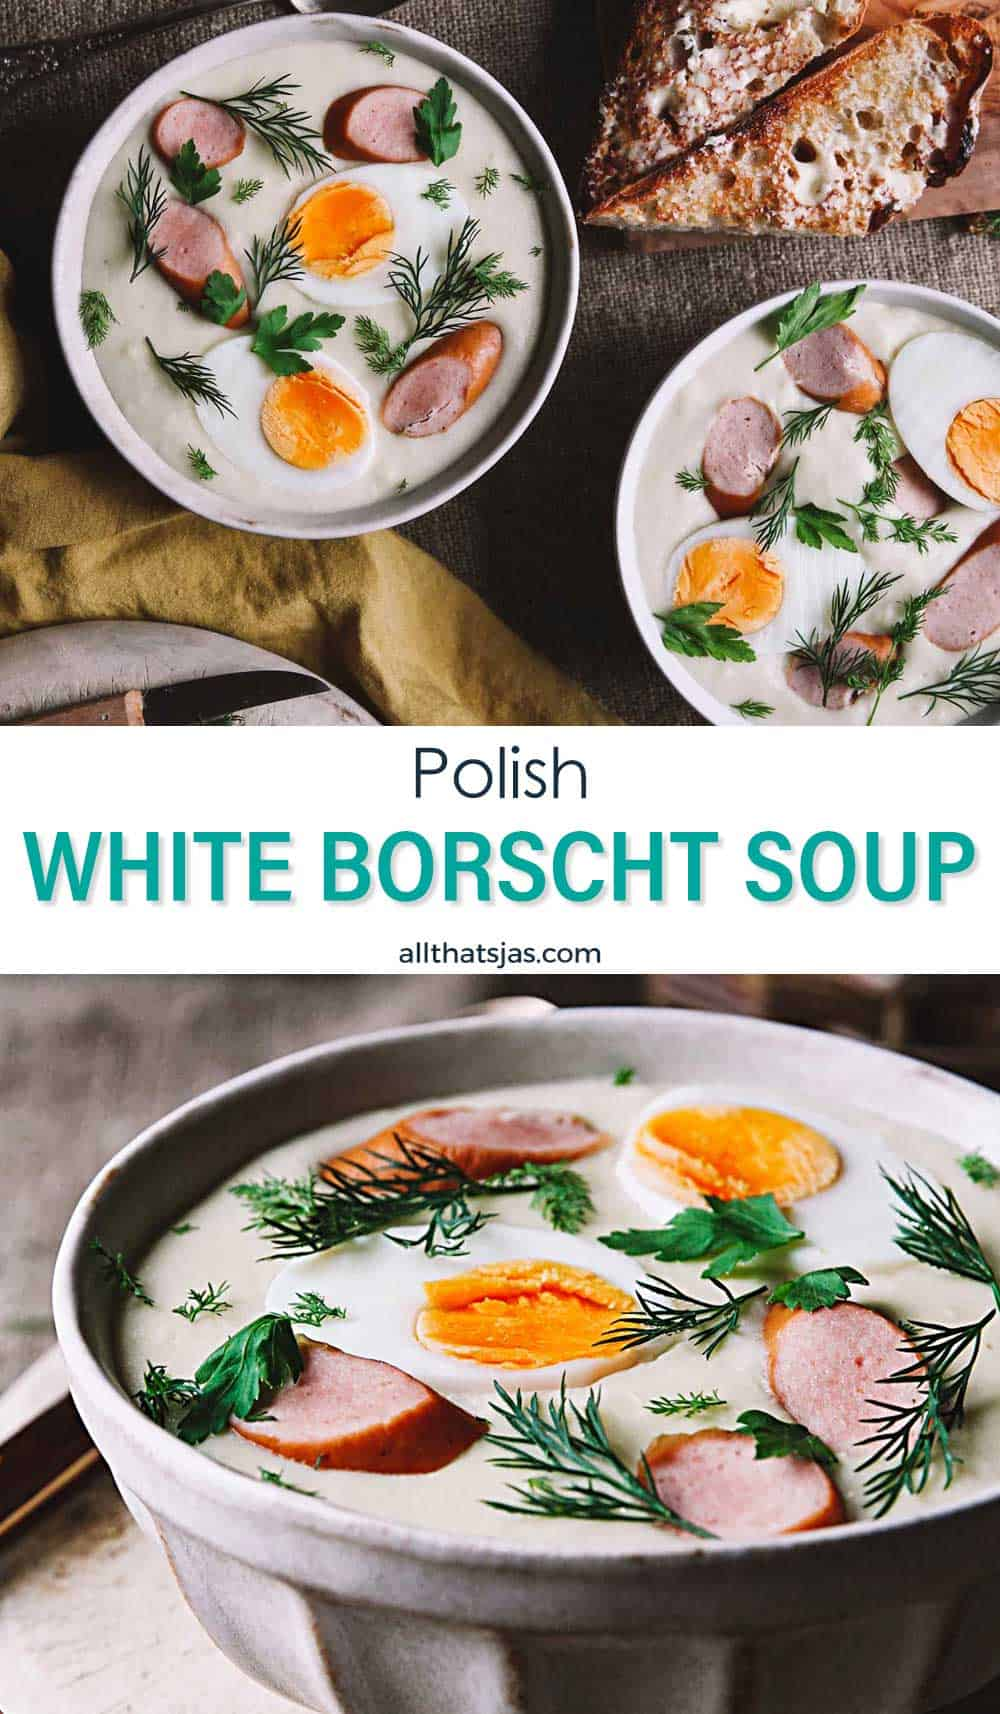 Two photo image of Polish soup with text overlay in the middle.